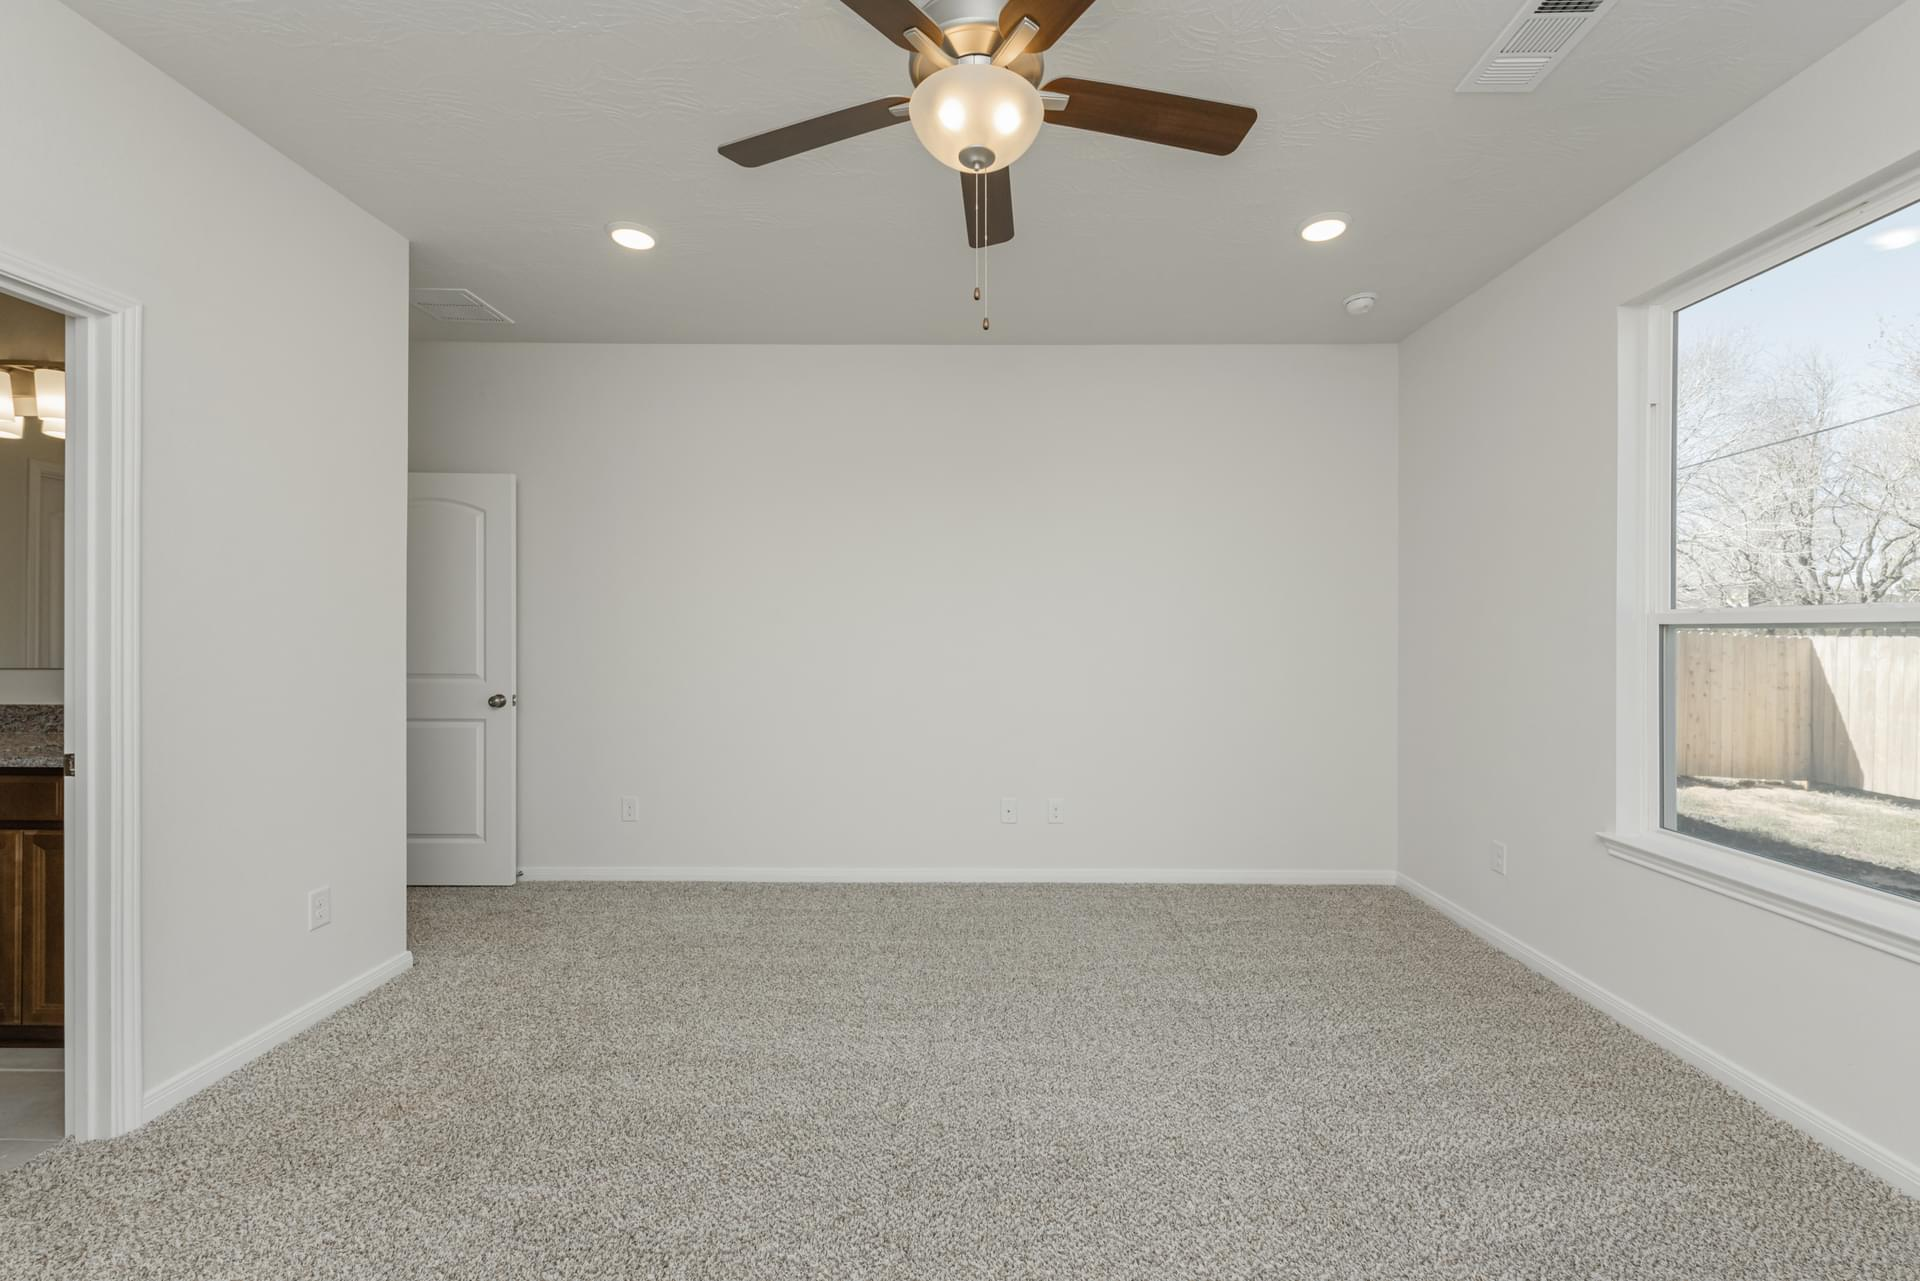 1,497sf New Home in College Station, TX